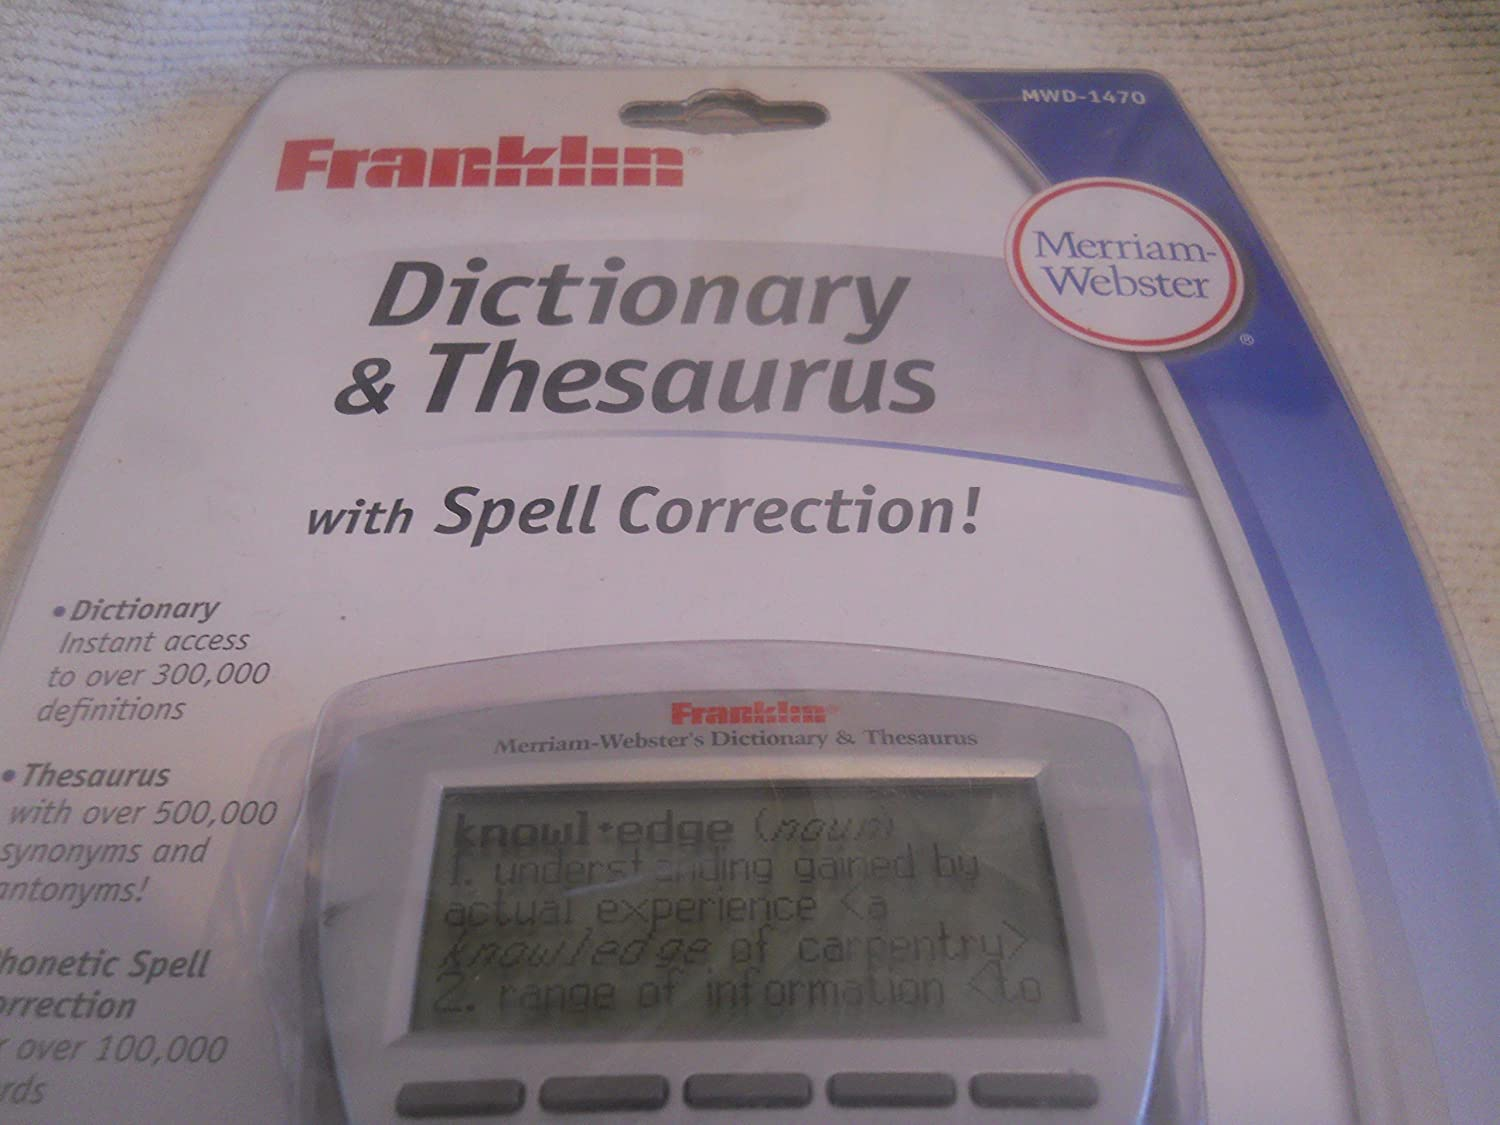 Amazon.com : Franklin Electronics MWD-1470 Merriam Webster Electronic  Dictionary and Thesaurus : Electronic English Dictionaries : Office Products